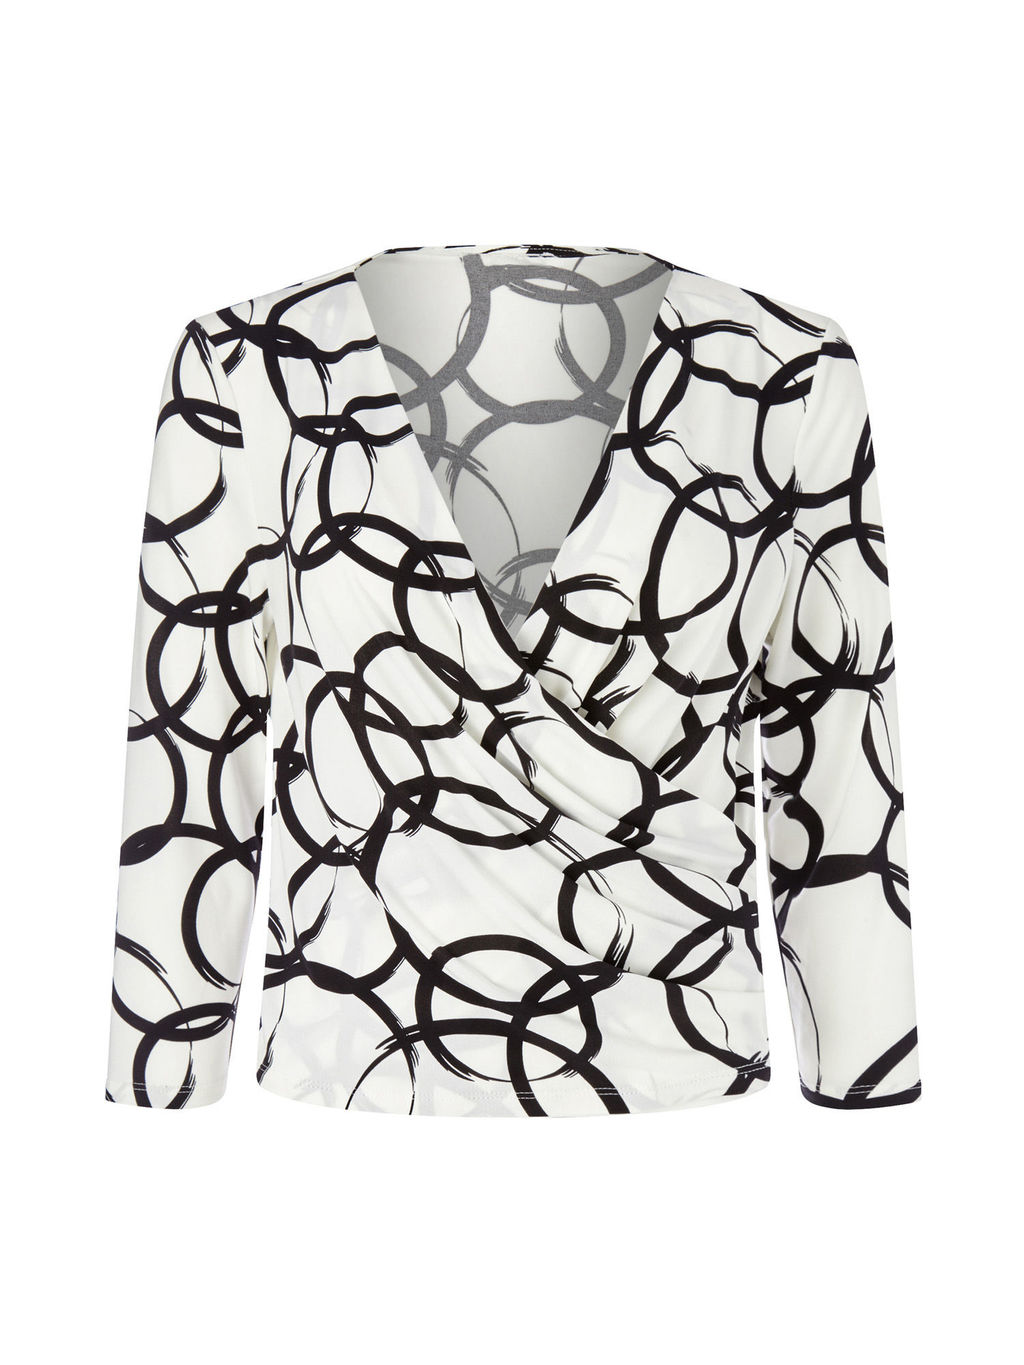 By Jeff Banks Circle Print Top, Ivory - neckline: v-neck; style: wrap/faux wrap; predominant colour: white; secondary colour: black; occasions: casual; length: standard; fibres: polyester/polyamide - stretch; fit: body skimming; sleeve length: 3/4 length; sleeve style: standard; pattern type: fabric; pattern: patterned/print; texture group: jersey - stretchy/drapey; multicoloured: multicoloured; season: s/s 2016; wardrobe: highlight